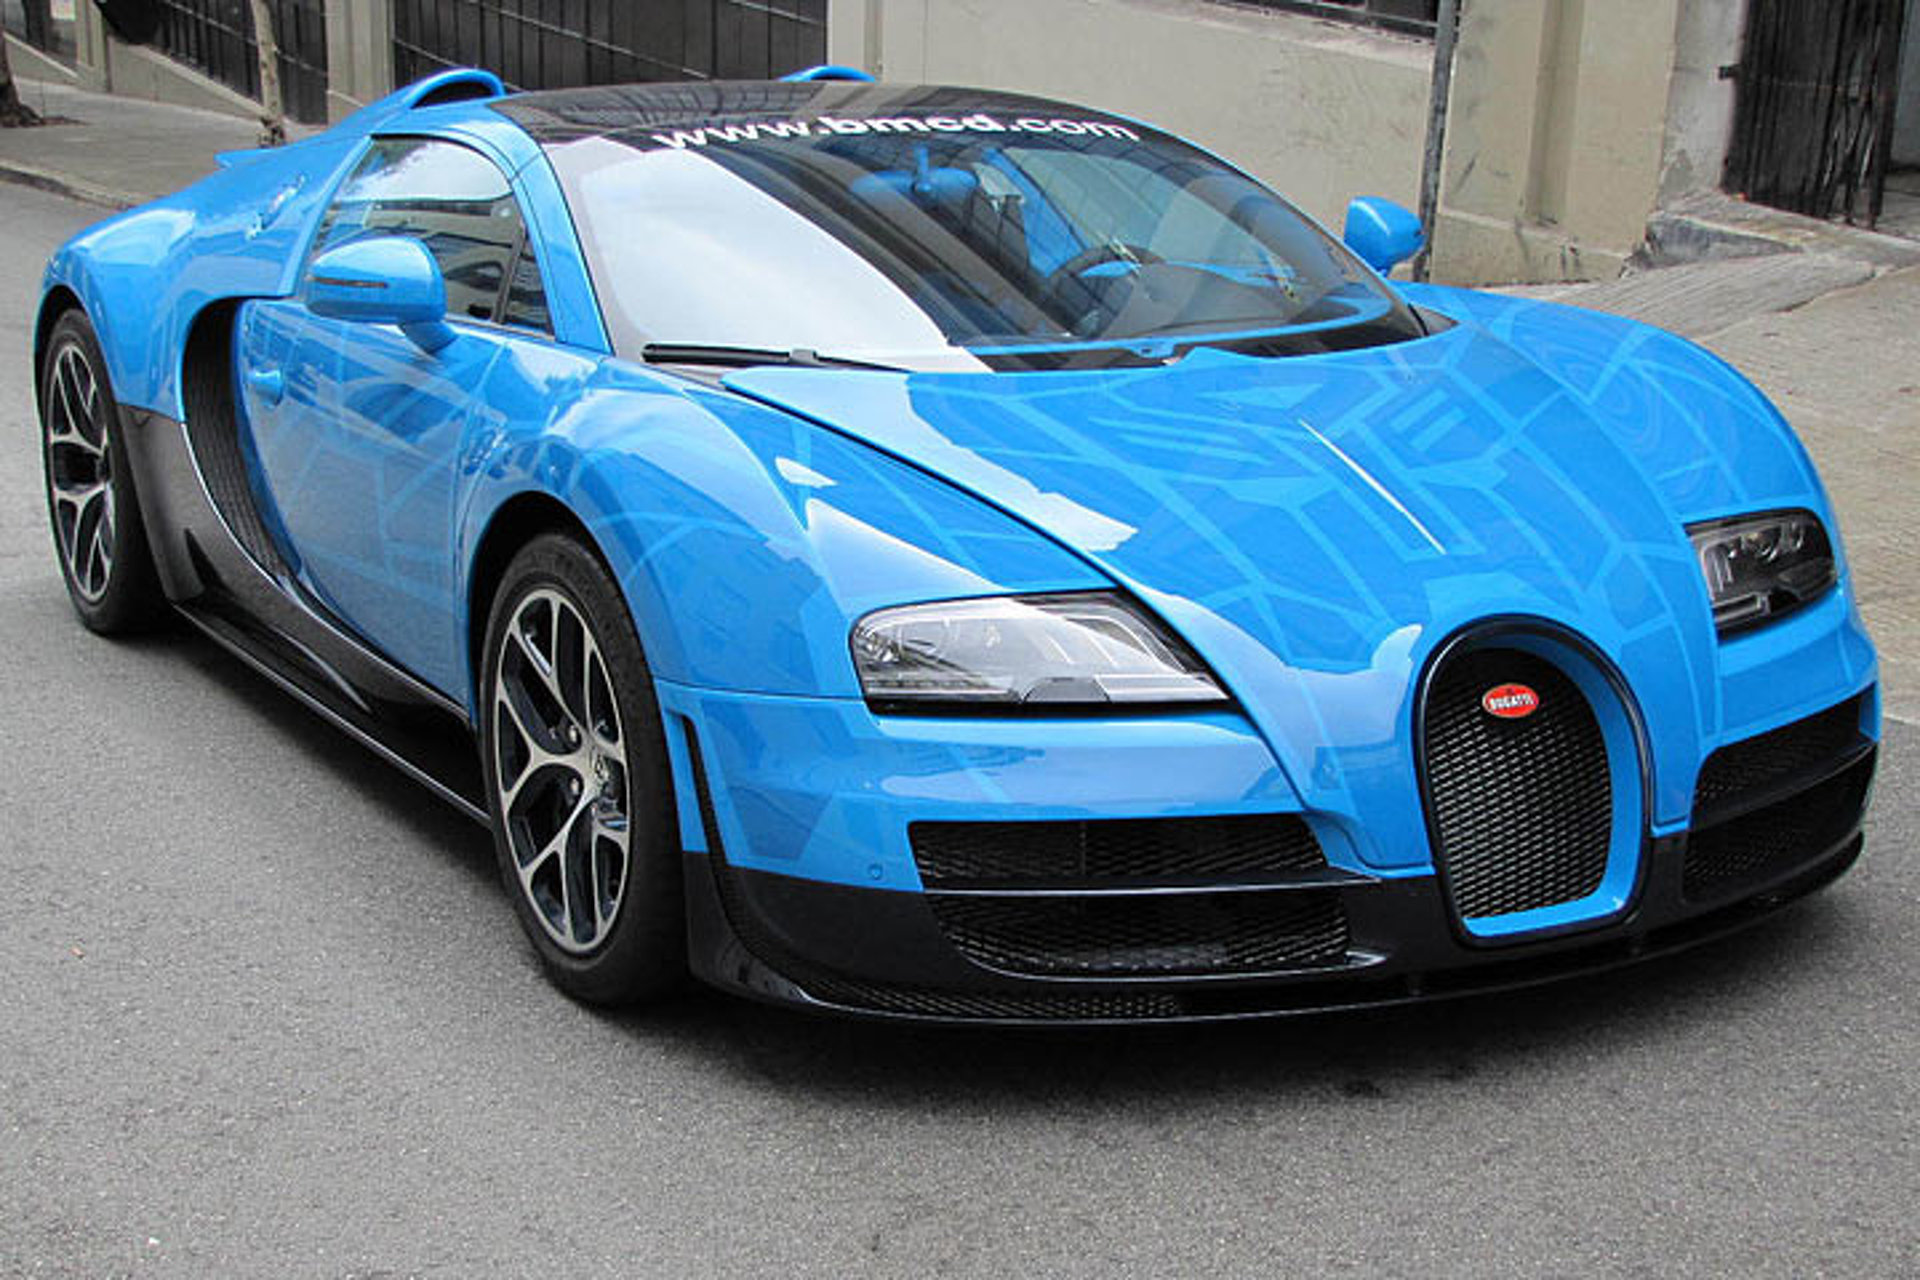 These Are the 5 Most Expensive Cars on eBay